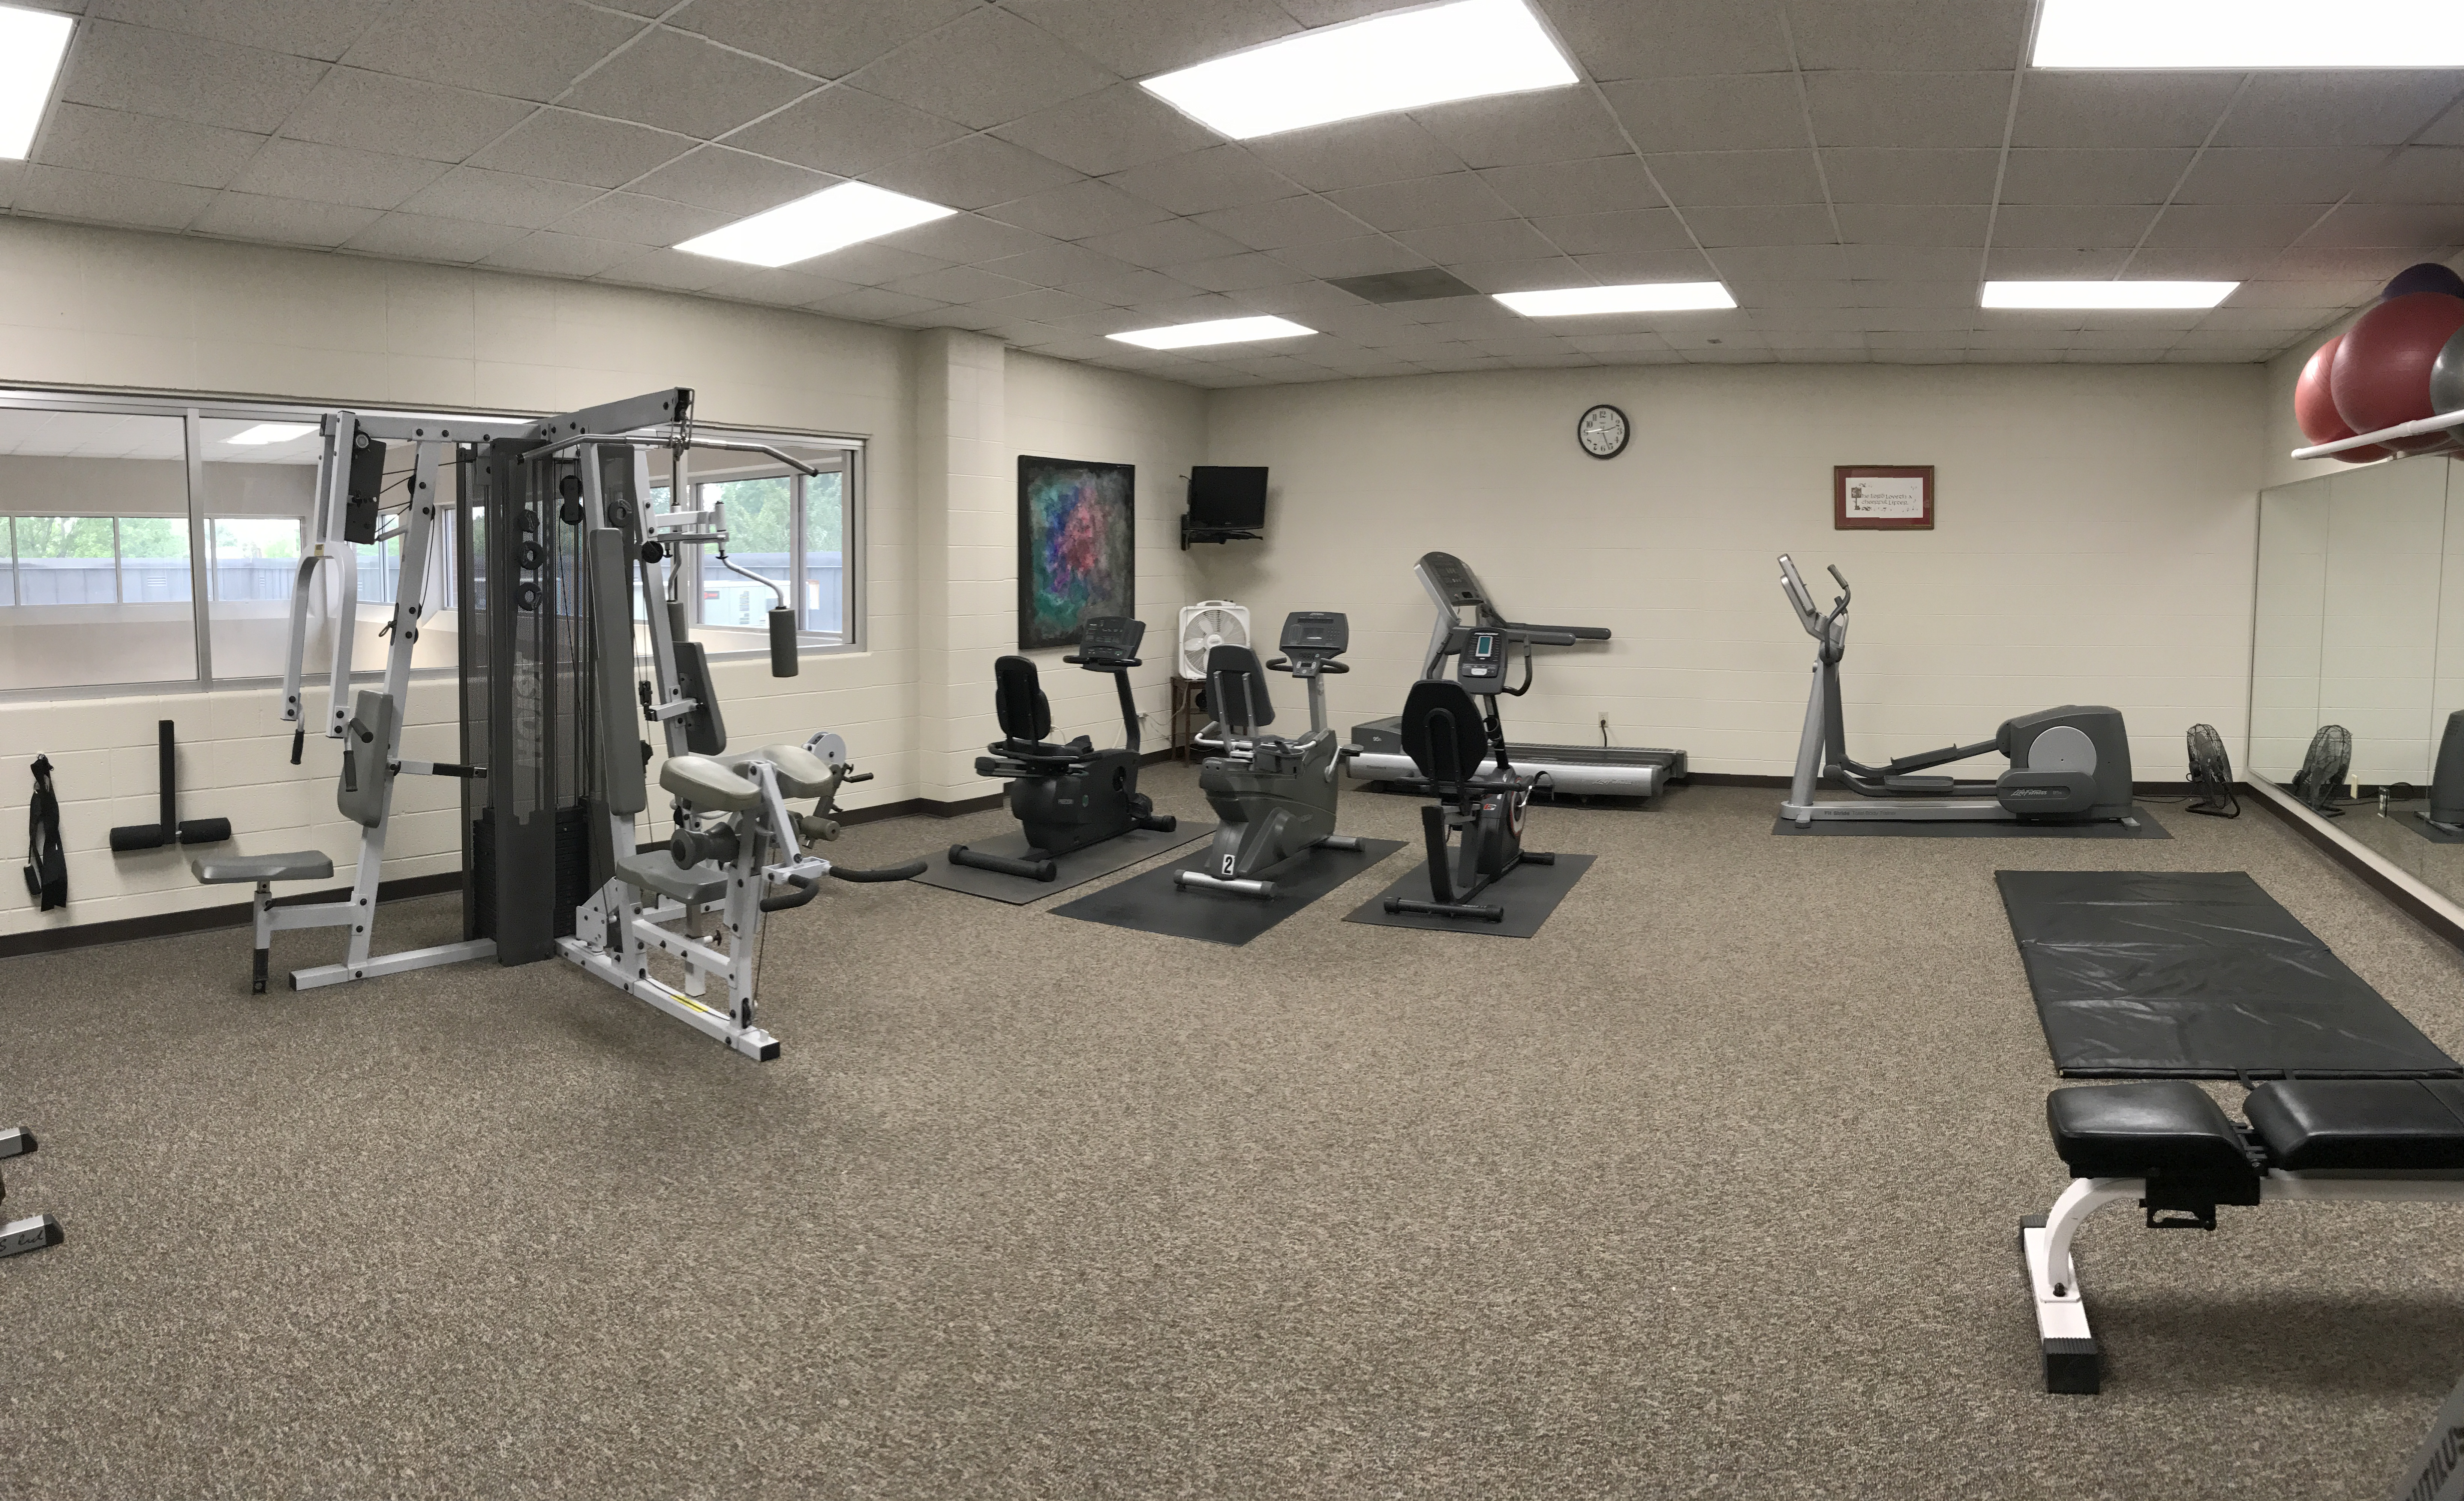 Weight/Exercise Room